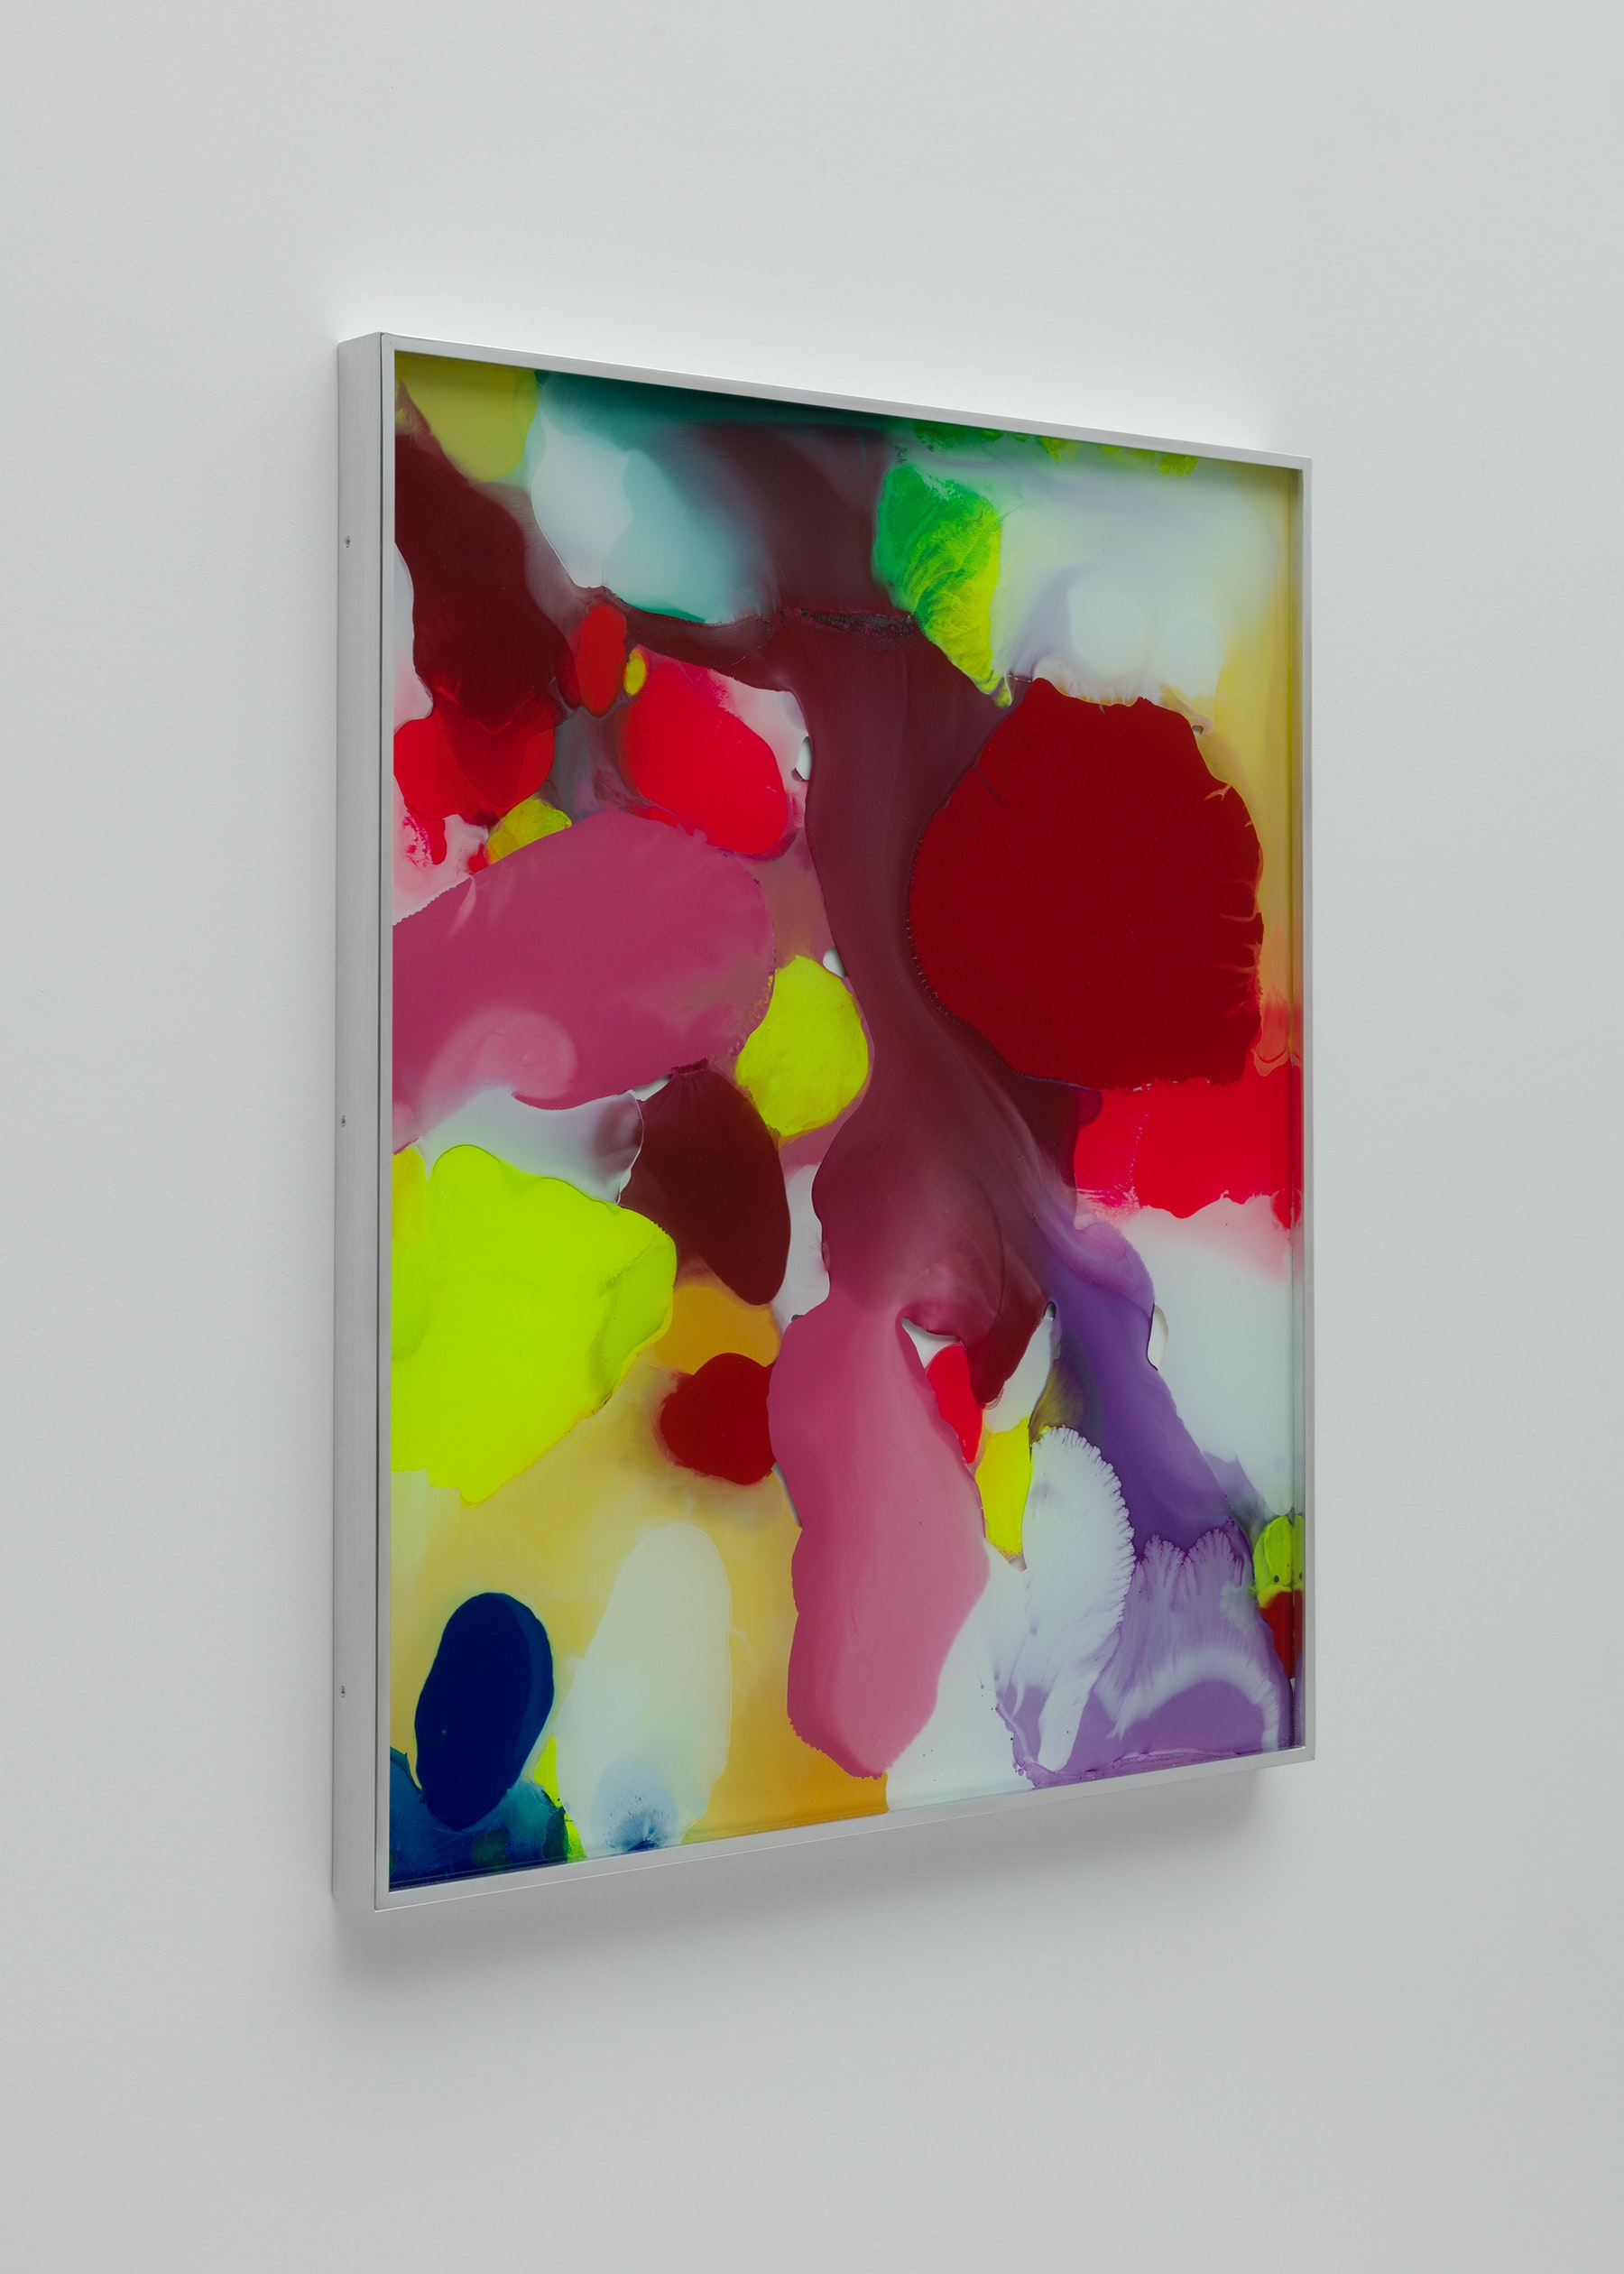 """Yunhee Min """"Up Close in Distance (variation study b2),"""" 2018 Enamel on laminated glass 30.5 x 25.5"""" [HxW] (77.47 x 64.77 cm) Inventory #MIN340 Courtesy of the artist and Vielmetter Los Angeles Photo credit: Brica Wilcox"""